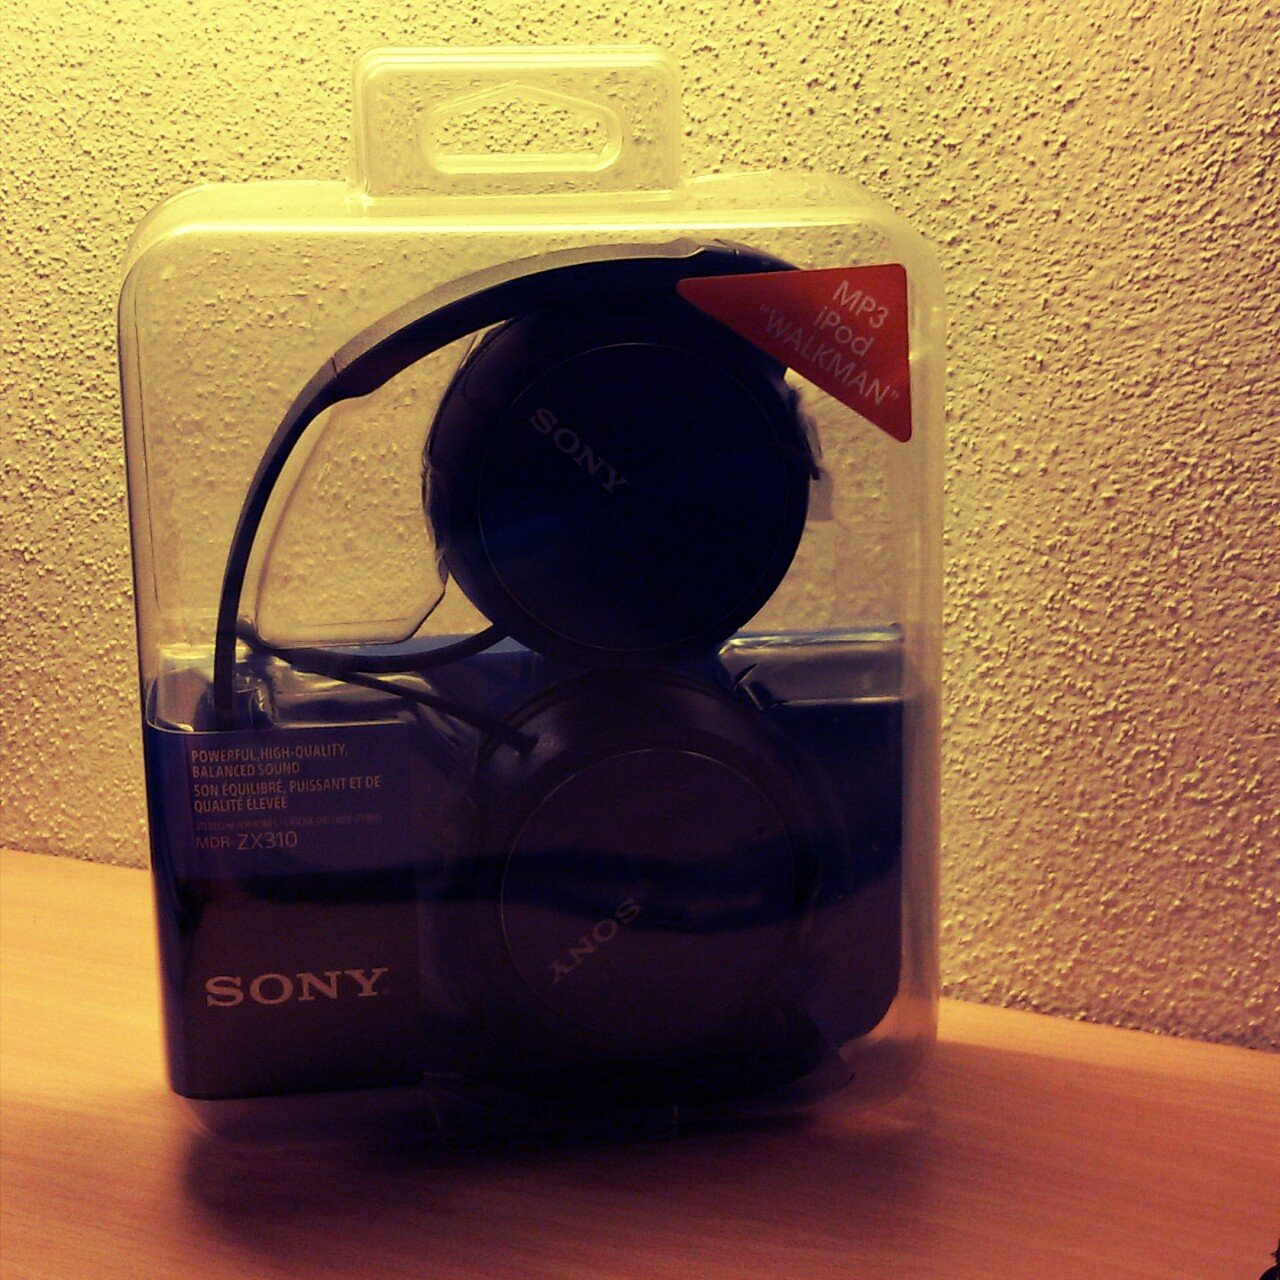 Cuffie della Sony MDR-ZX310 nuoveee!! Cuffie sony blue mp3 30ea14cae8f8